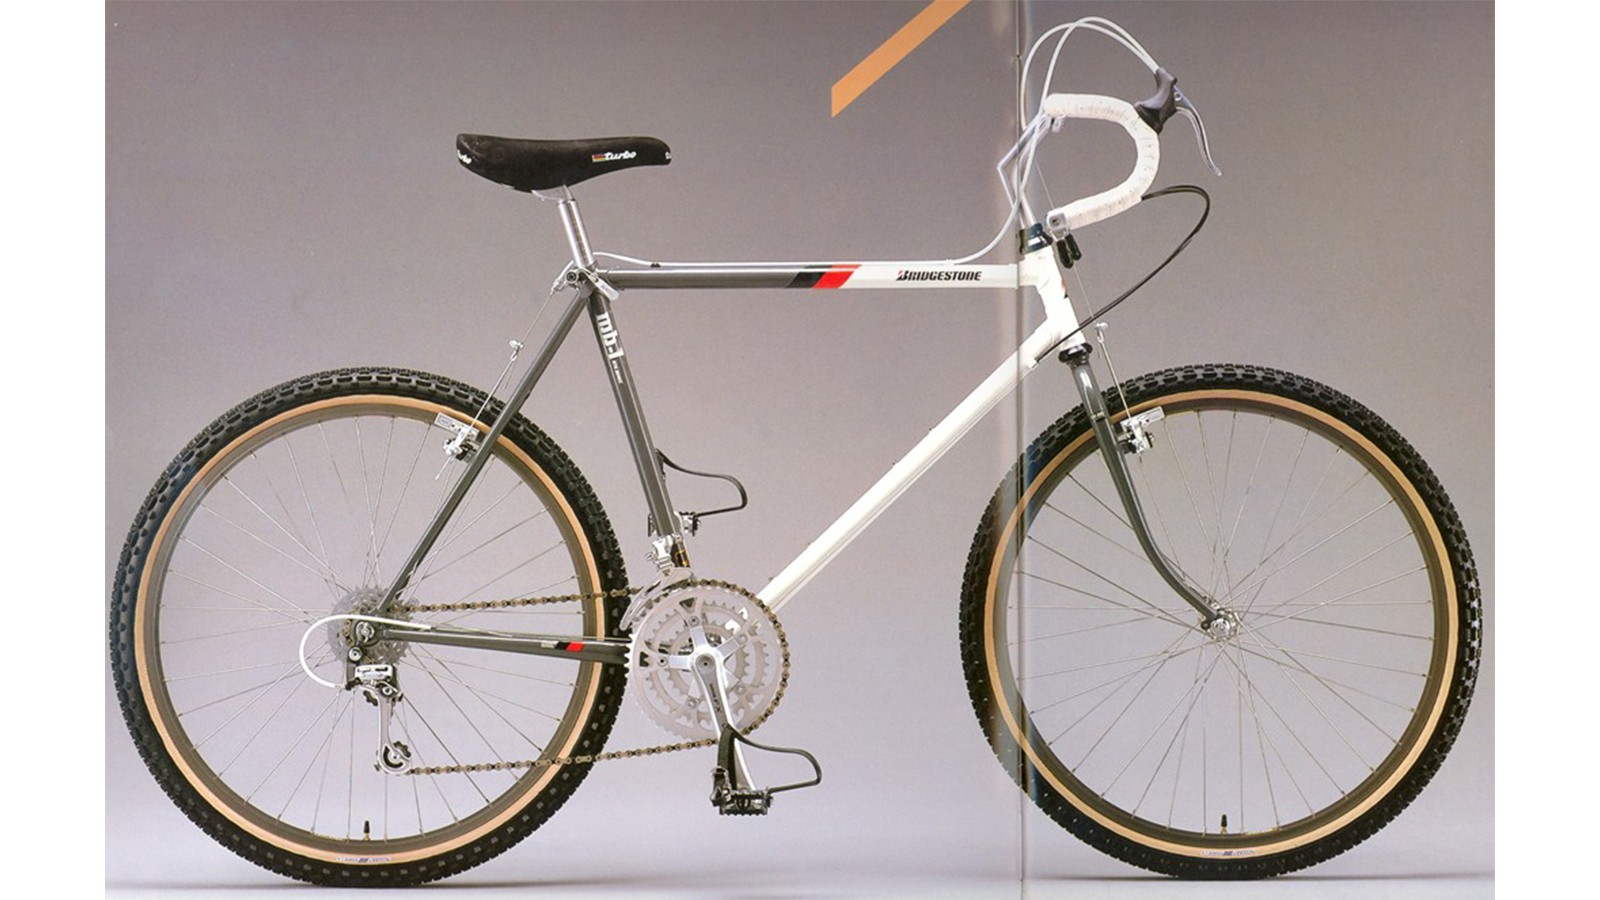 The one that got away: a 1981 Bridgestone MB-1 in all its quirky glory